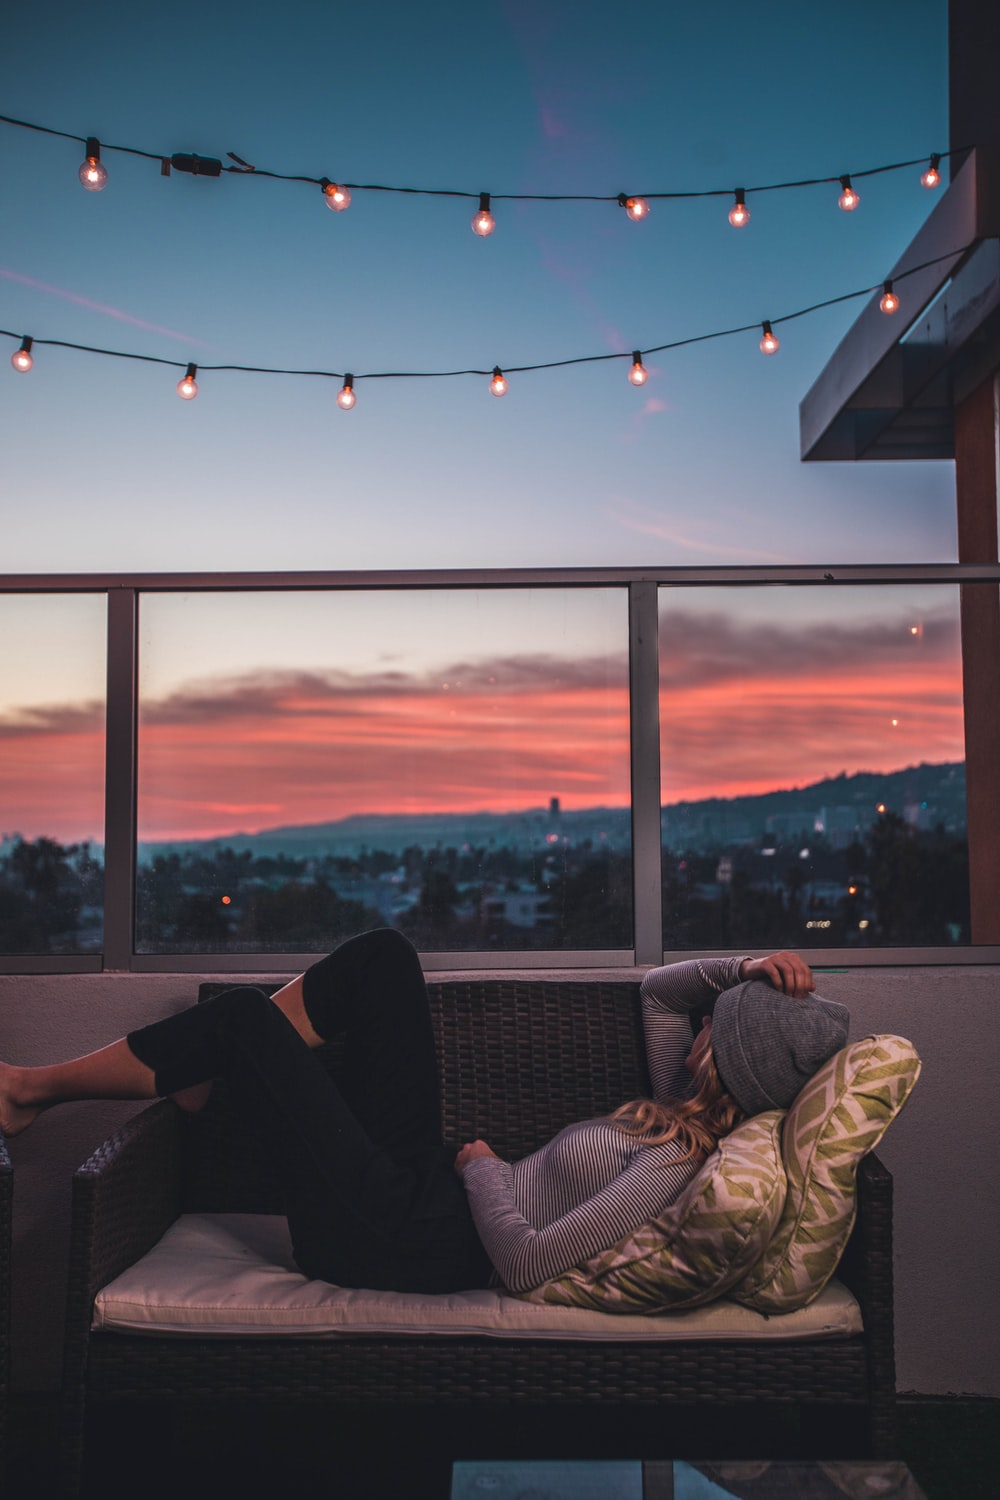 100 Balcony Pictures Download Free Images On Unsplash